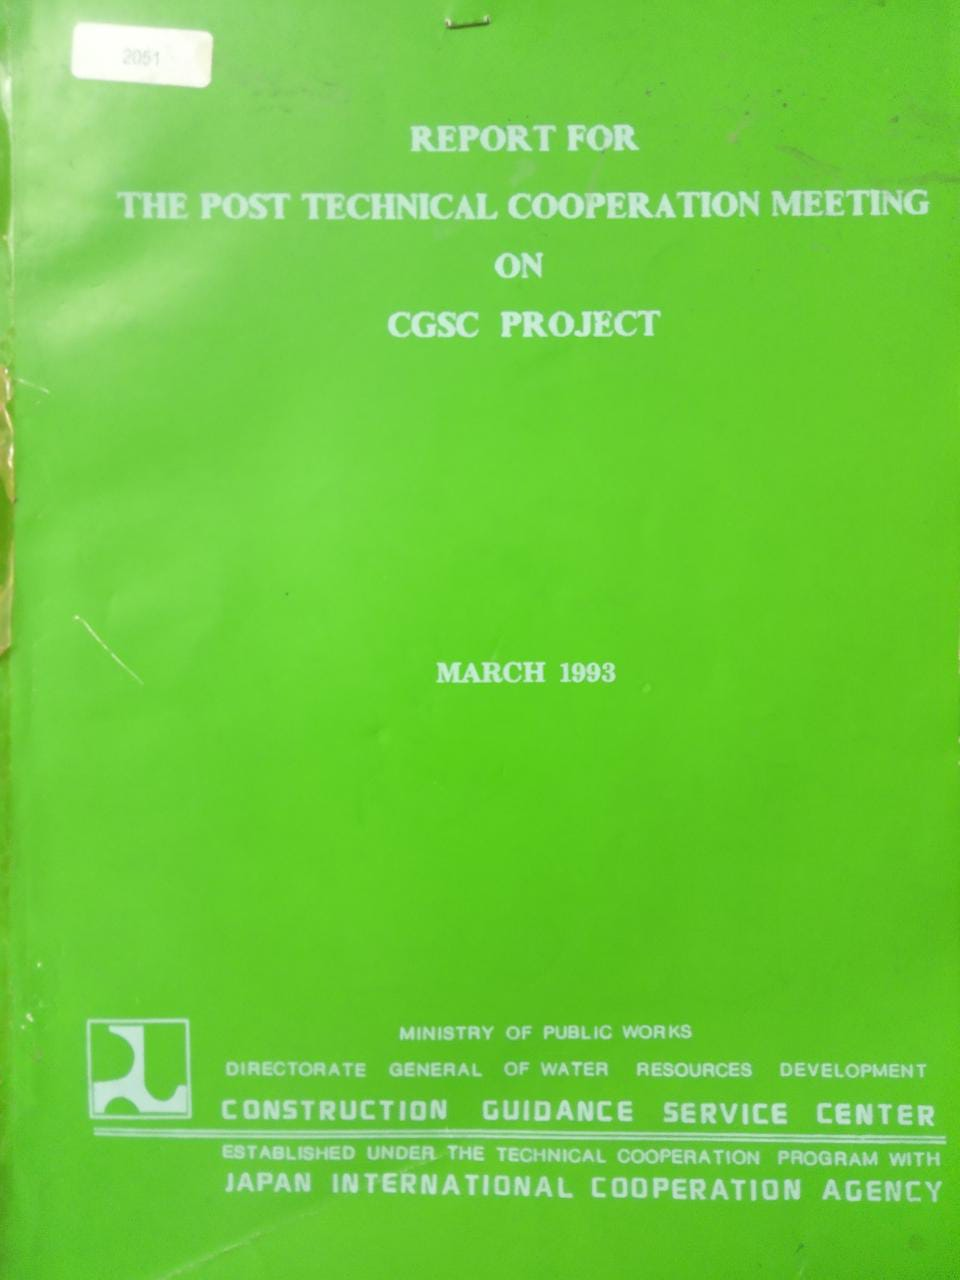 REPORT FOR THE POST TECHNICAL COOPERATION MEETING ON CGSC PROJECT